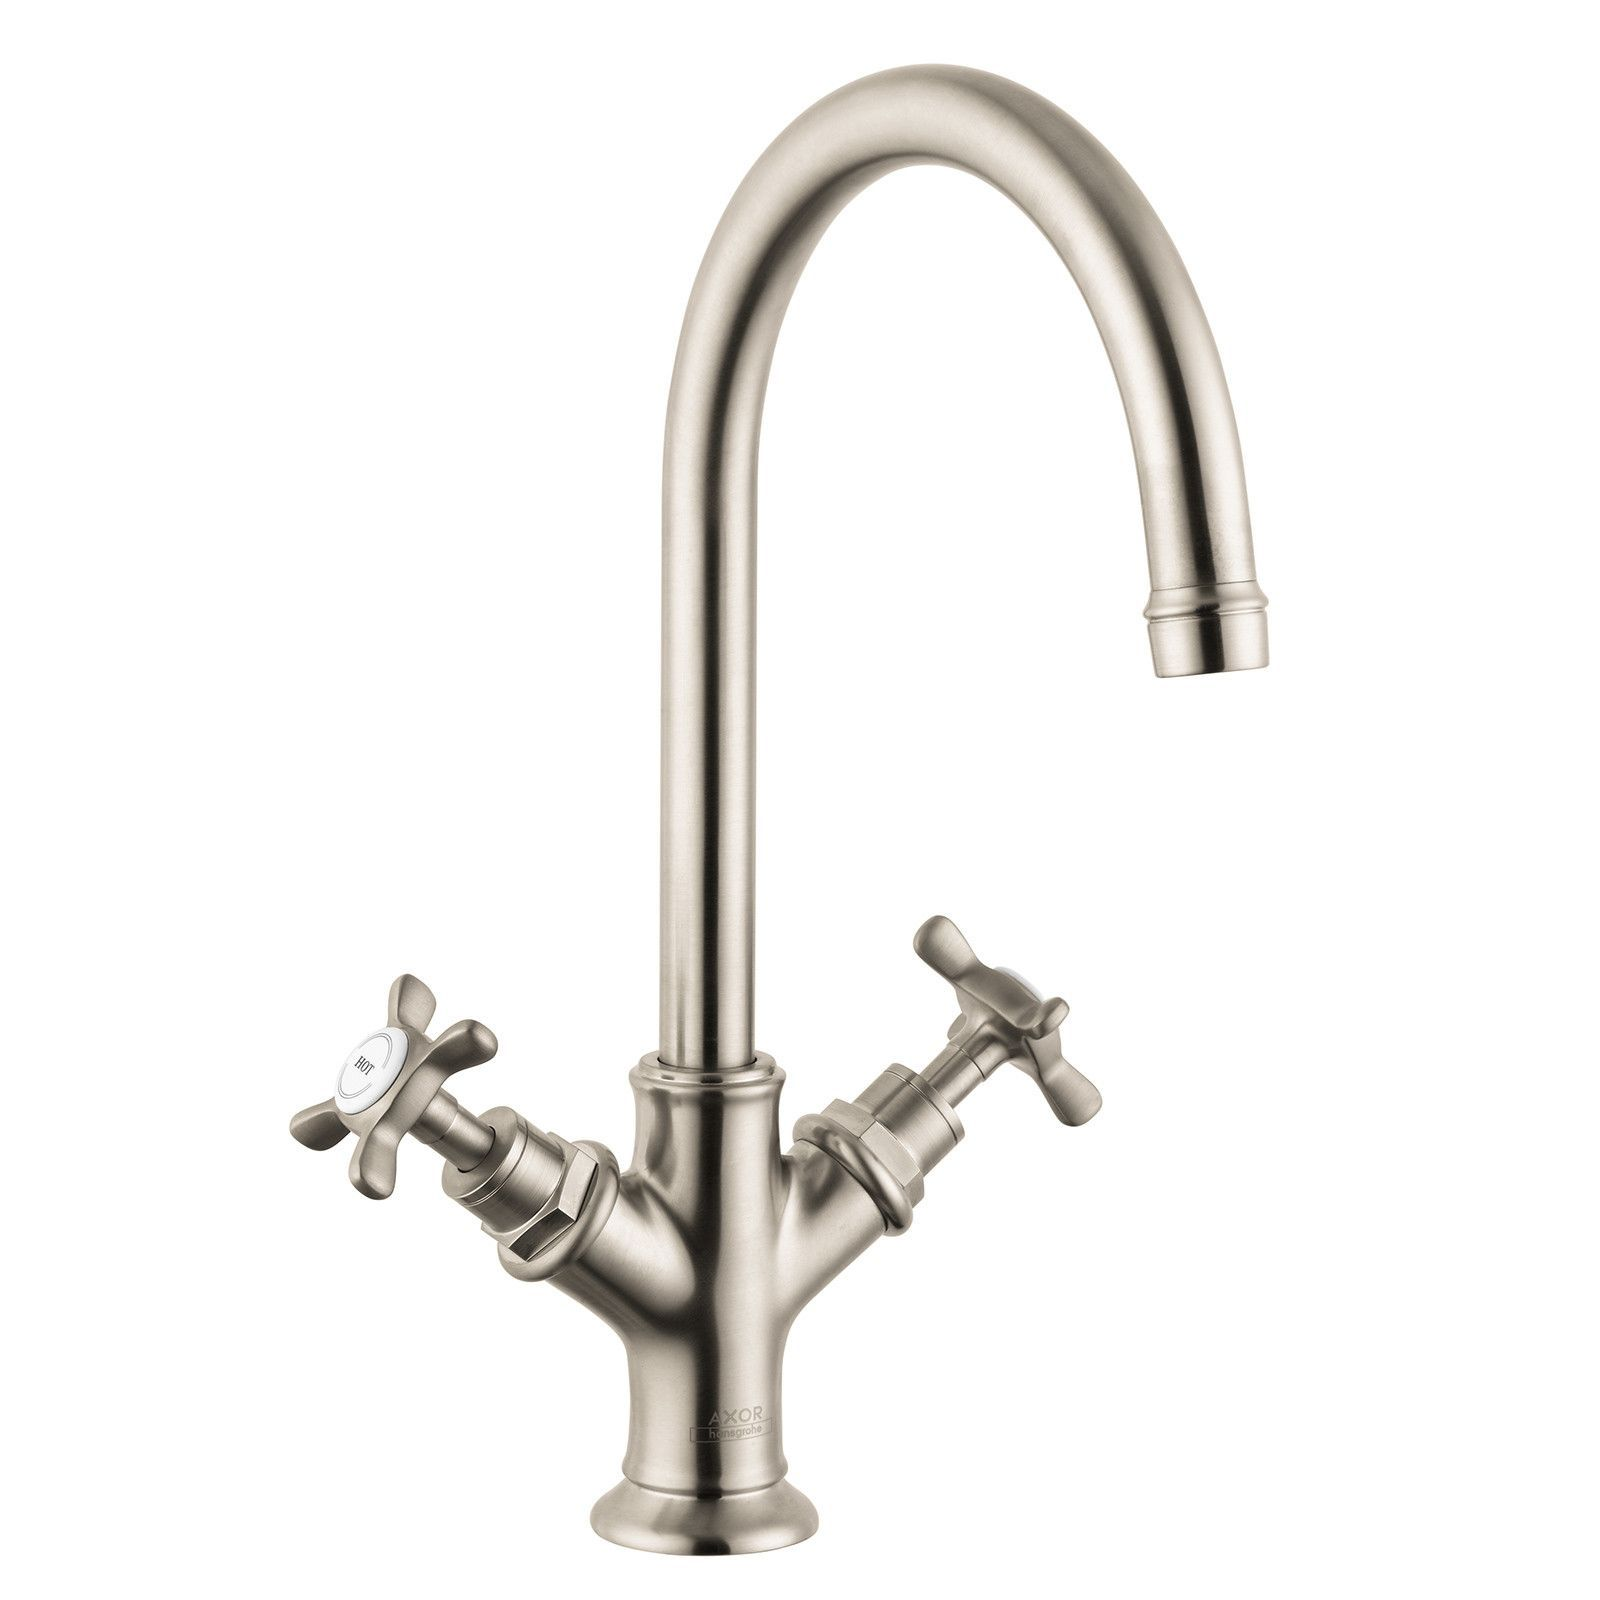 hansgrohe axor brushed nickel montreux bathroom faucet